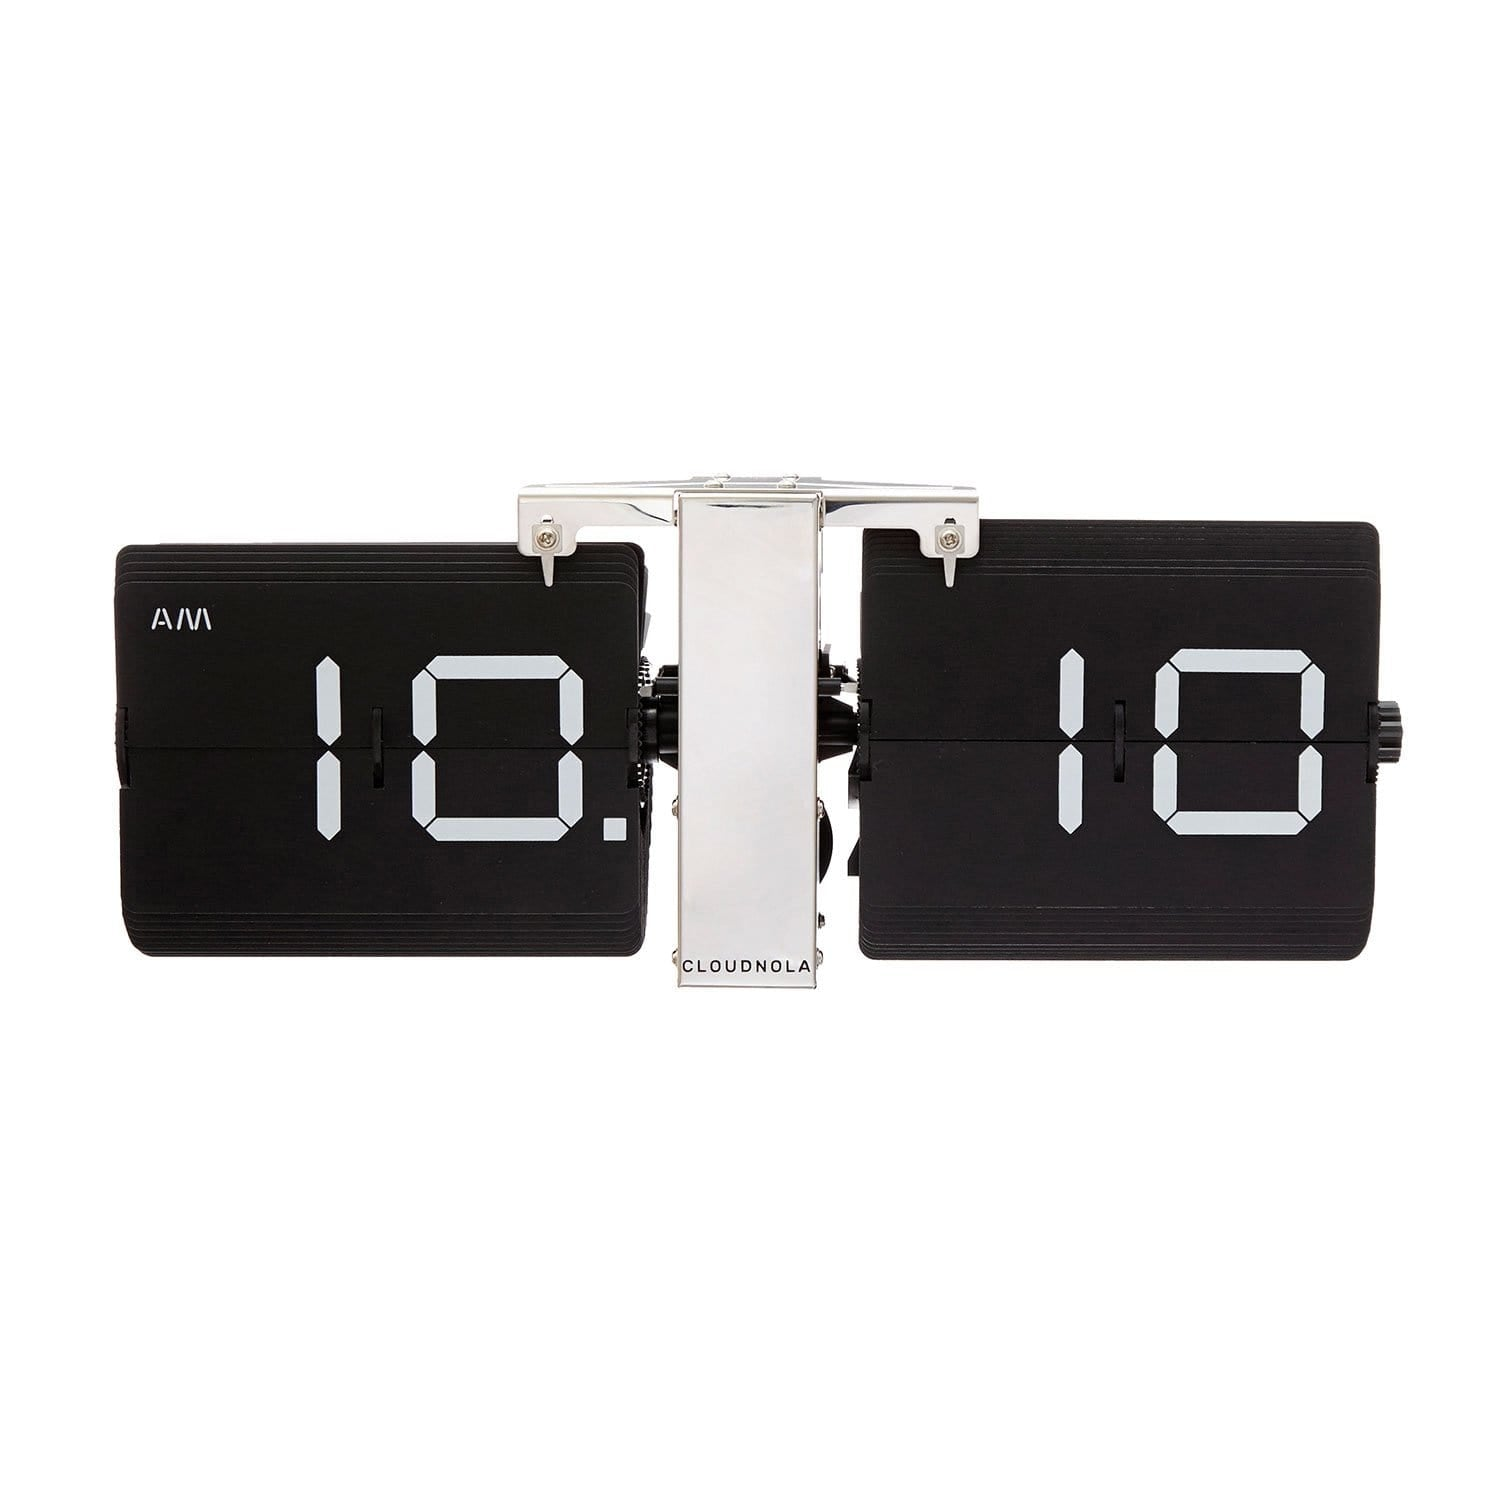 cloudnola Flip Clock Flipping Out Black Flip Clock